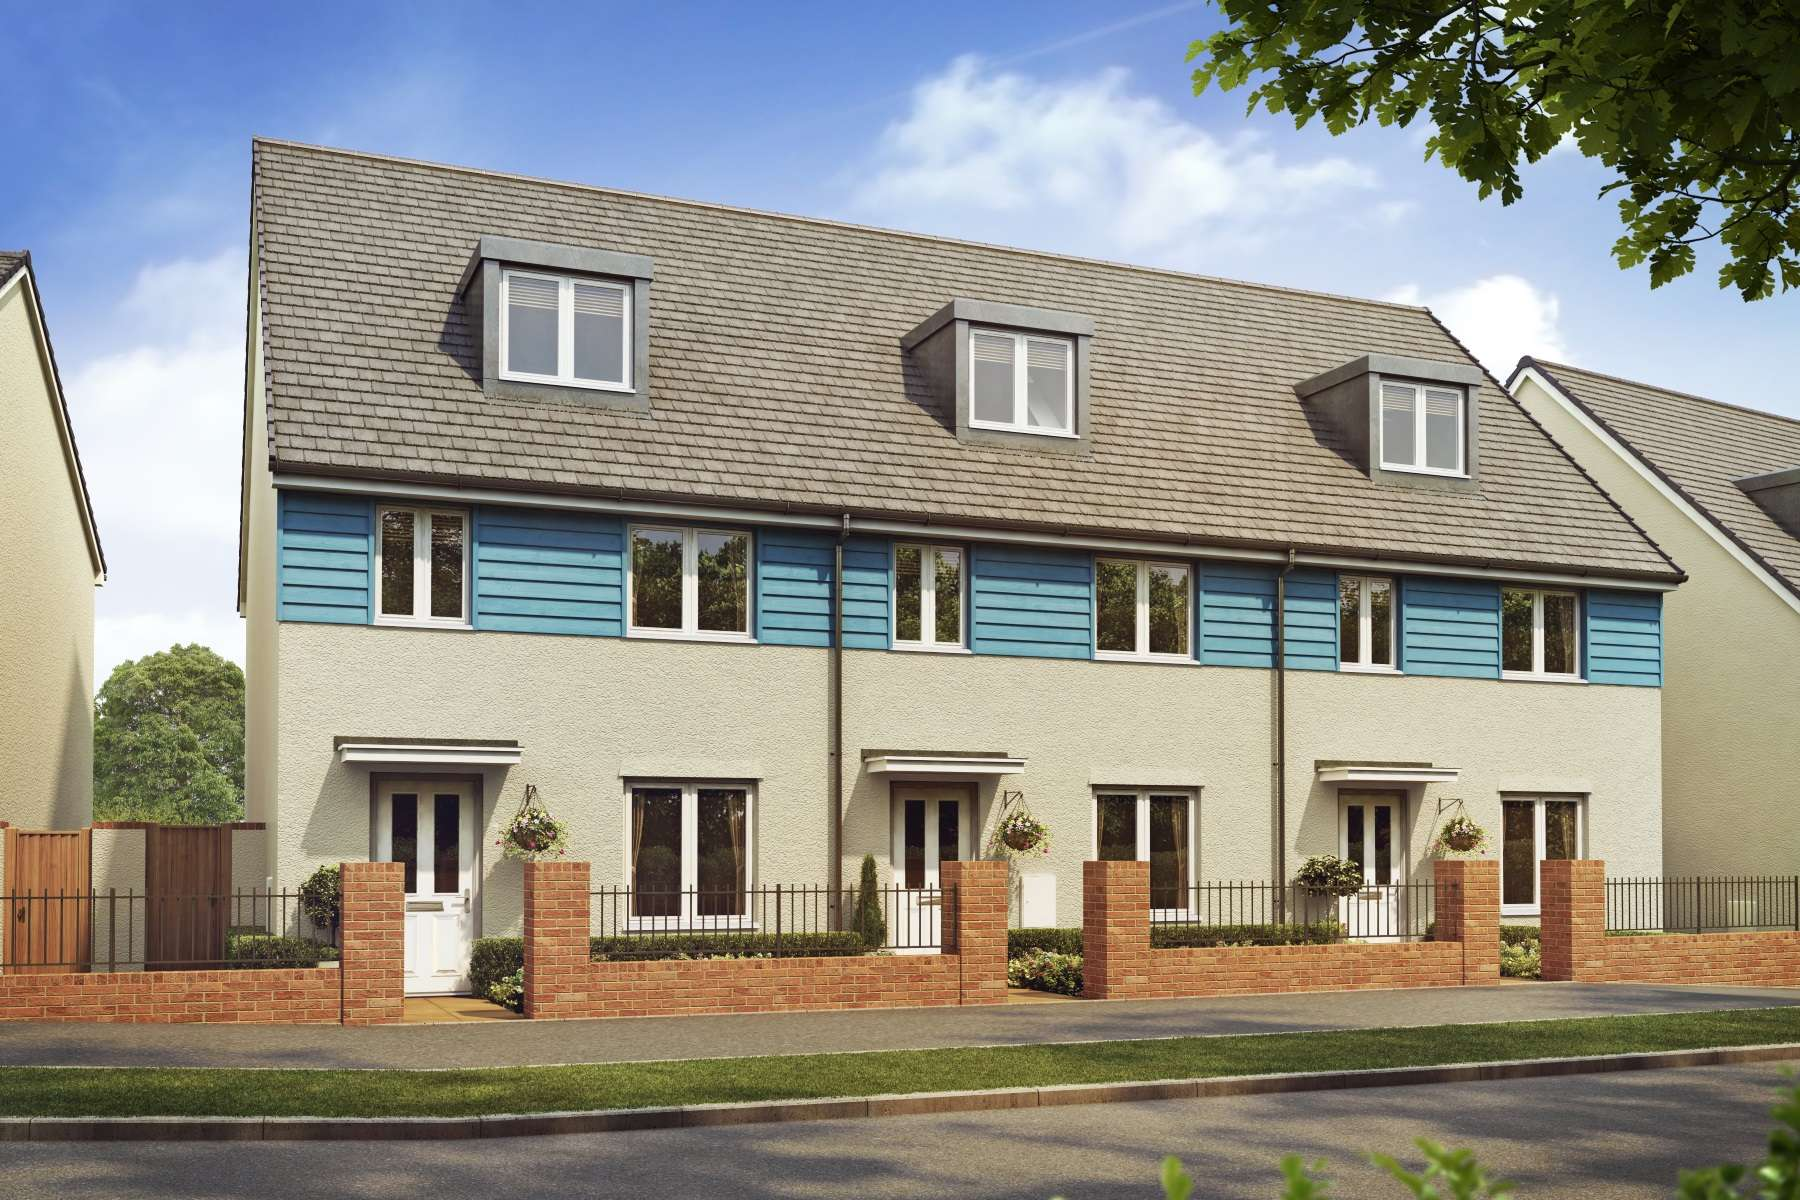 The Crofton